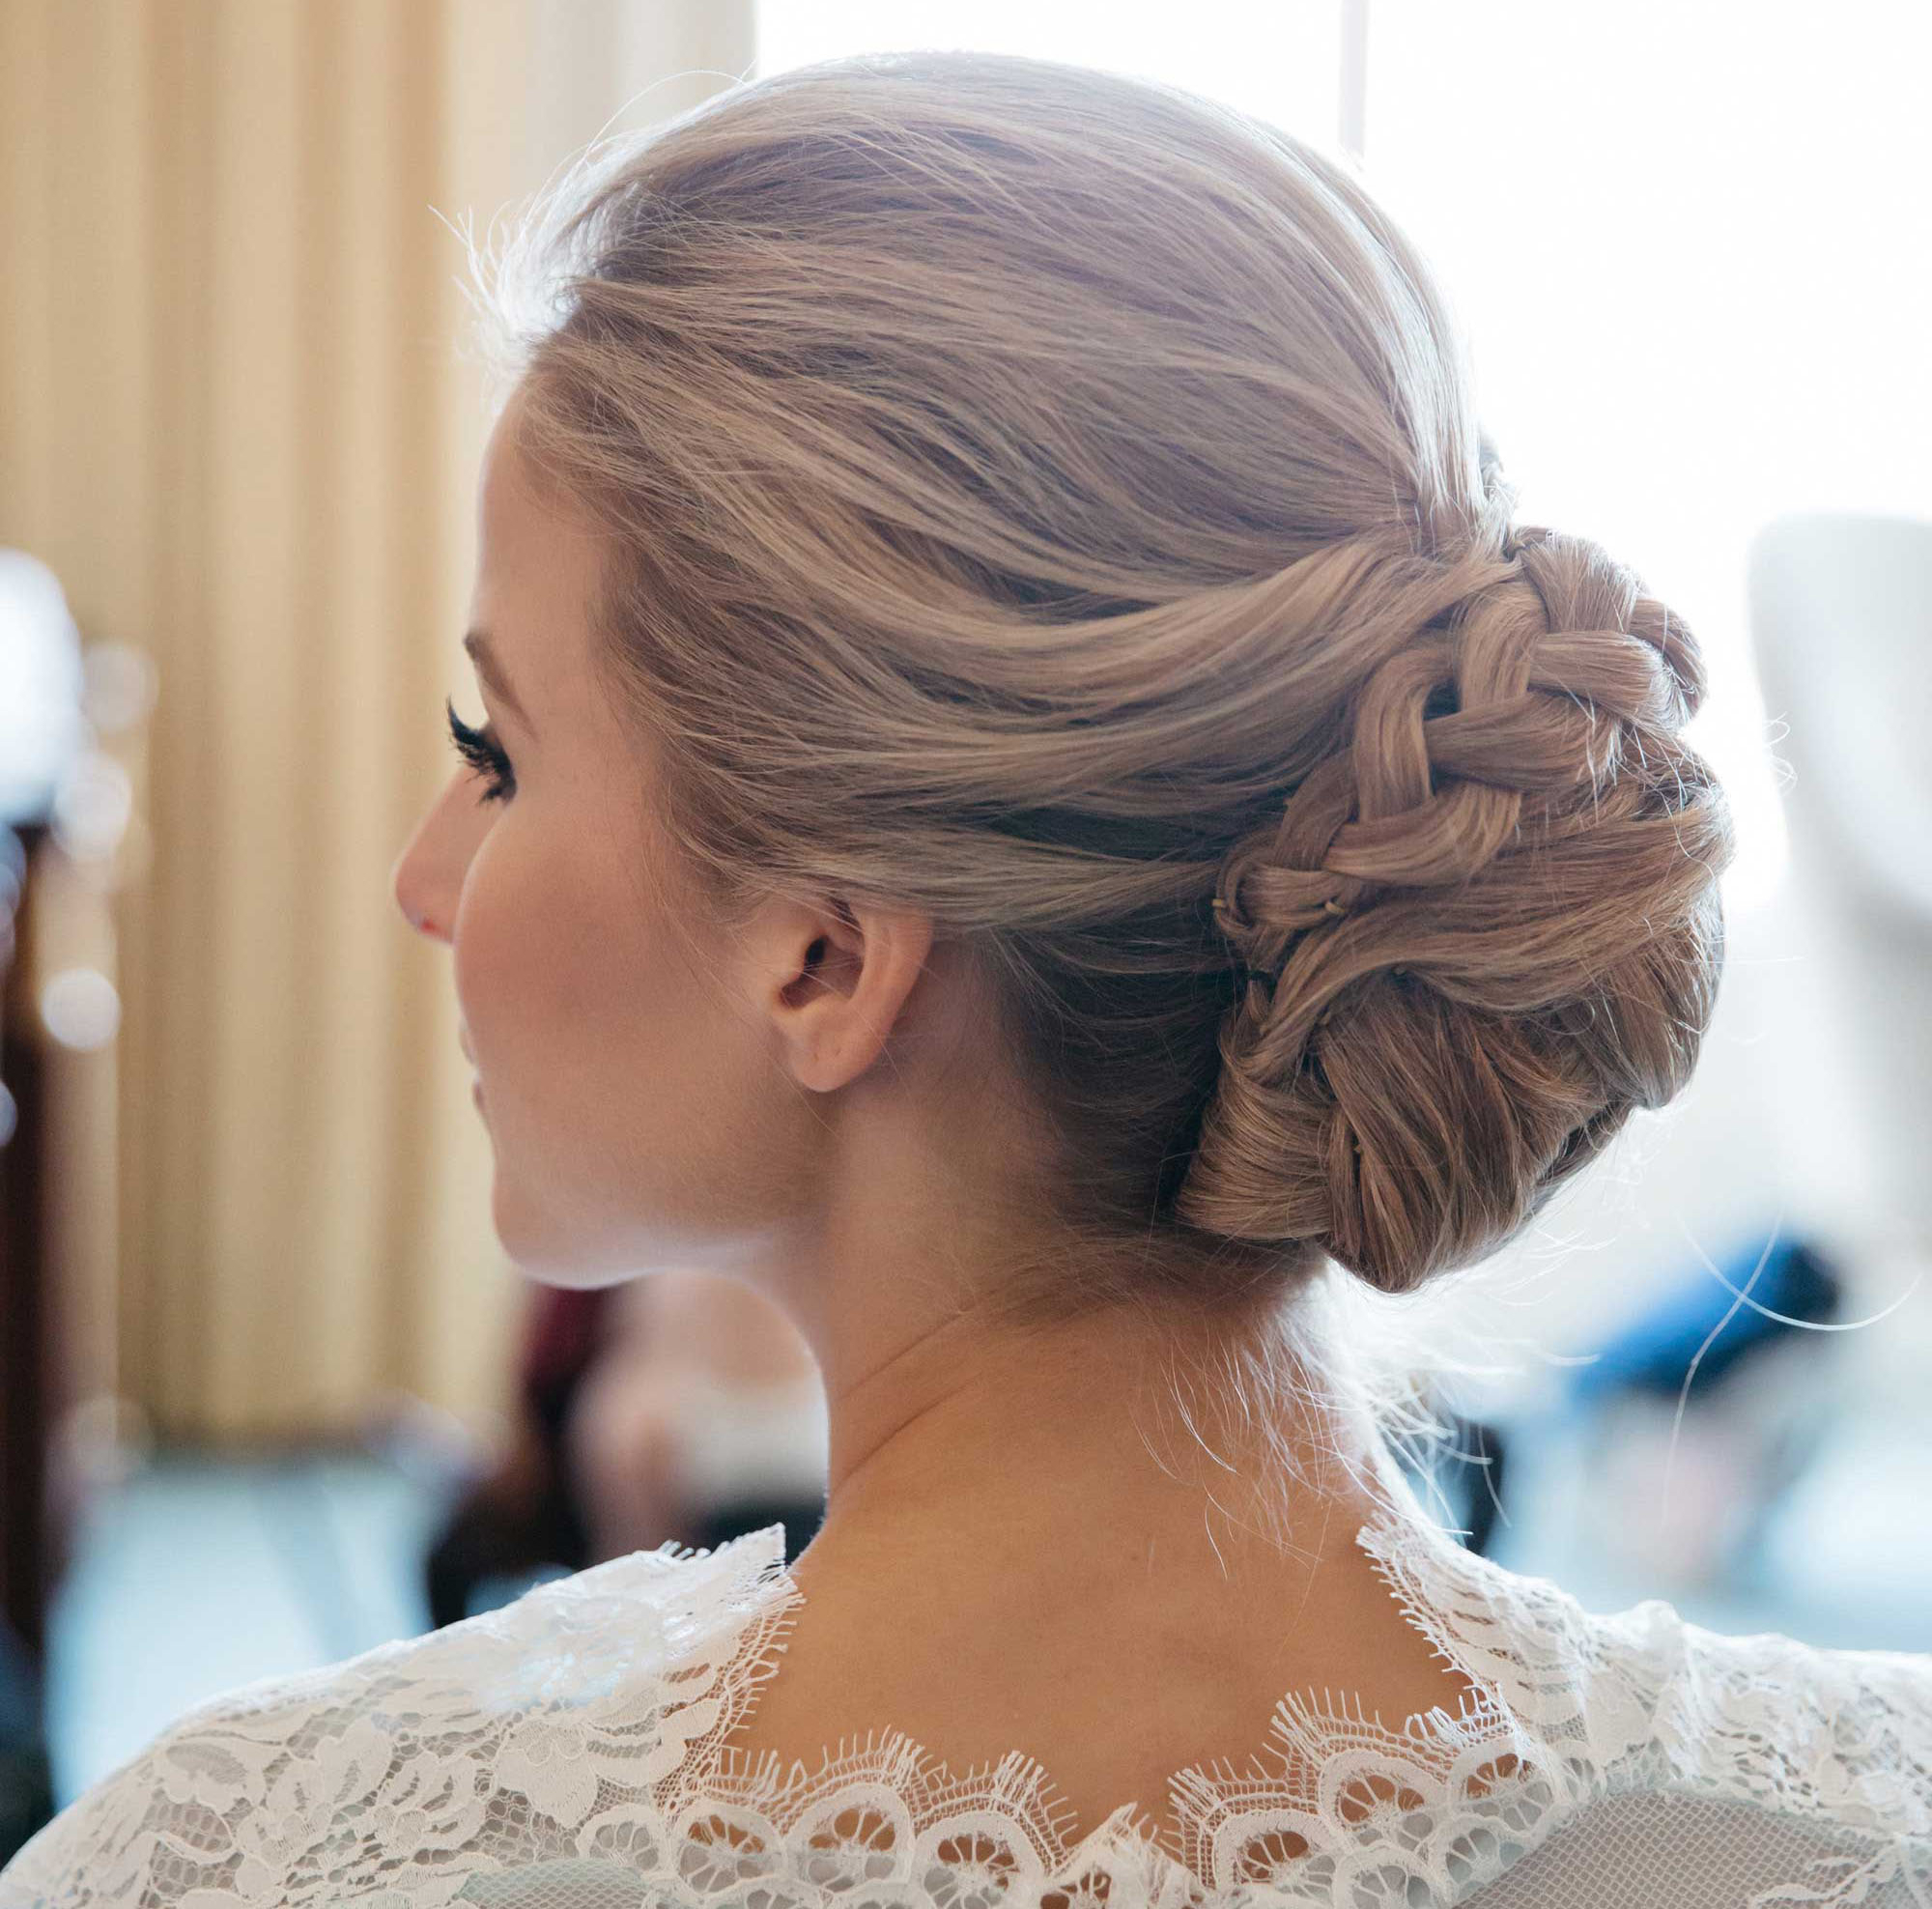 Preferred Modern Updo Hairstyles For Wedding With Braided Hairstyles: 5 Ideas For Your Wedding Look – Inside Weddings (View 6 of 20)